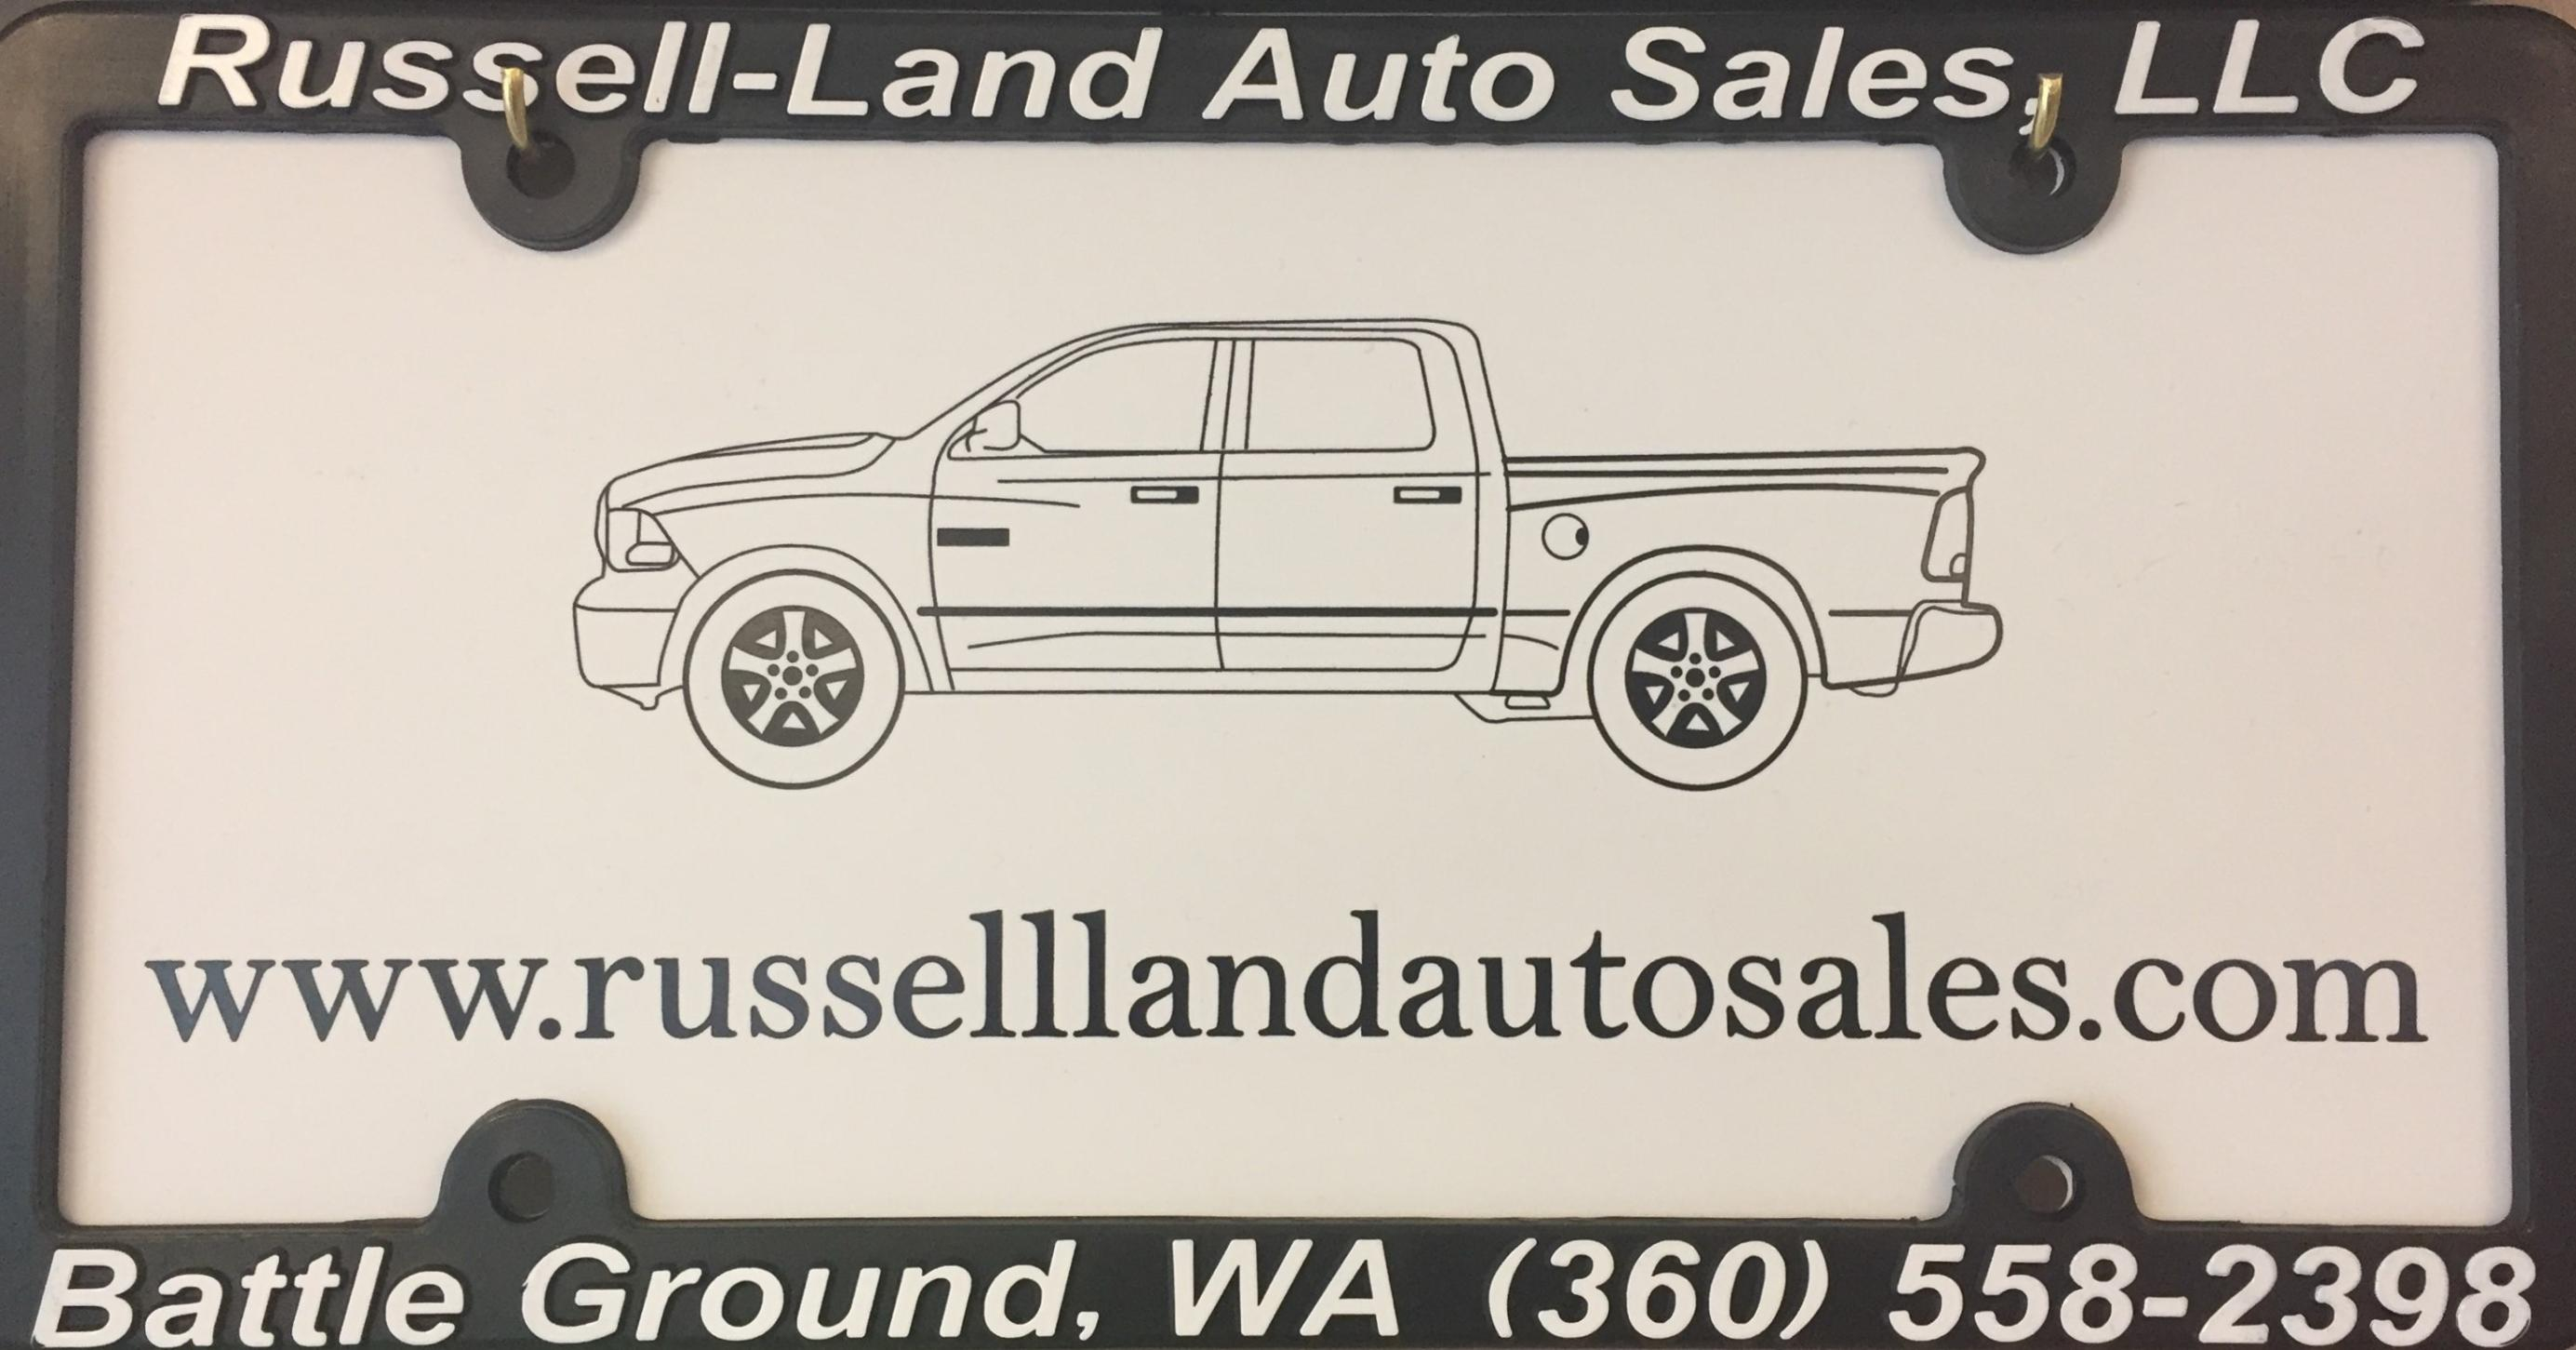 Russell Land Auto Sales